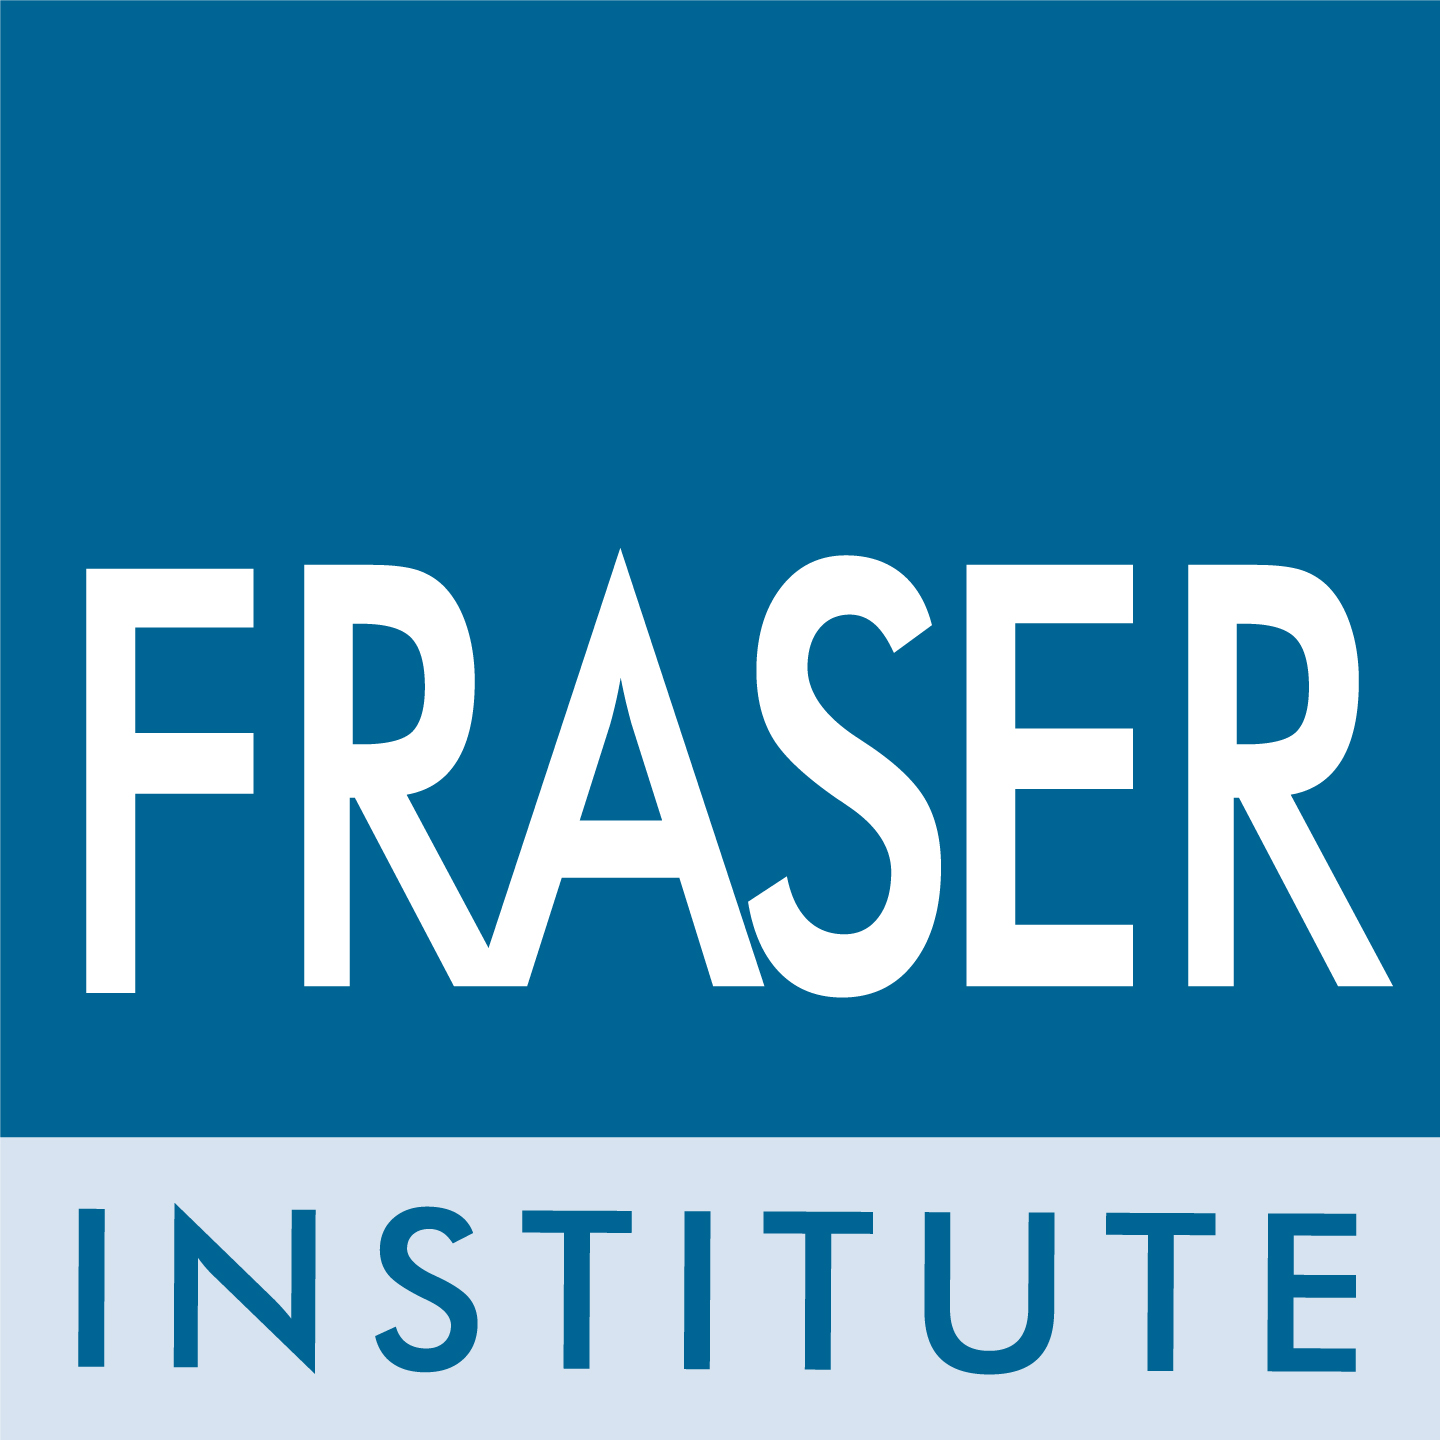 Fraser Institute News Release: Chrétien government's historic 1995 budget restored sound fiscal policies in Ottawa; a stark contrast with current government